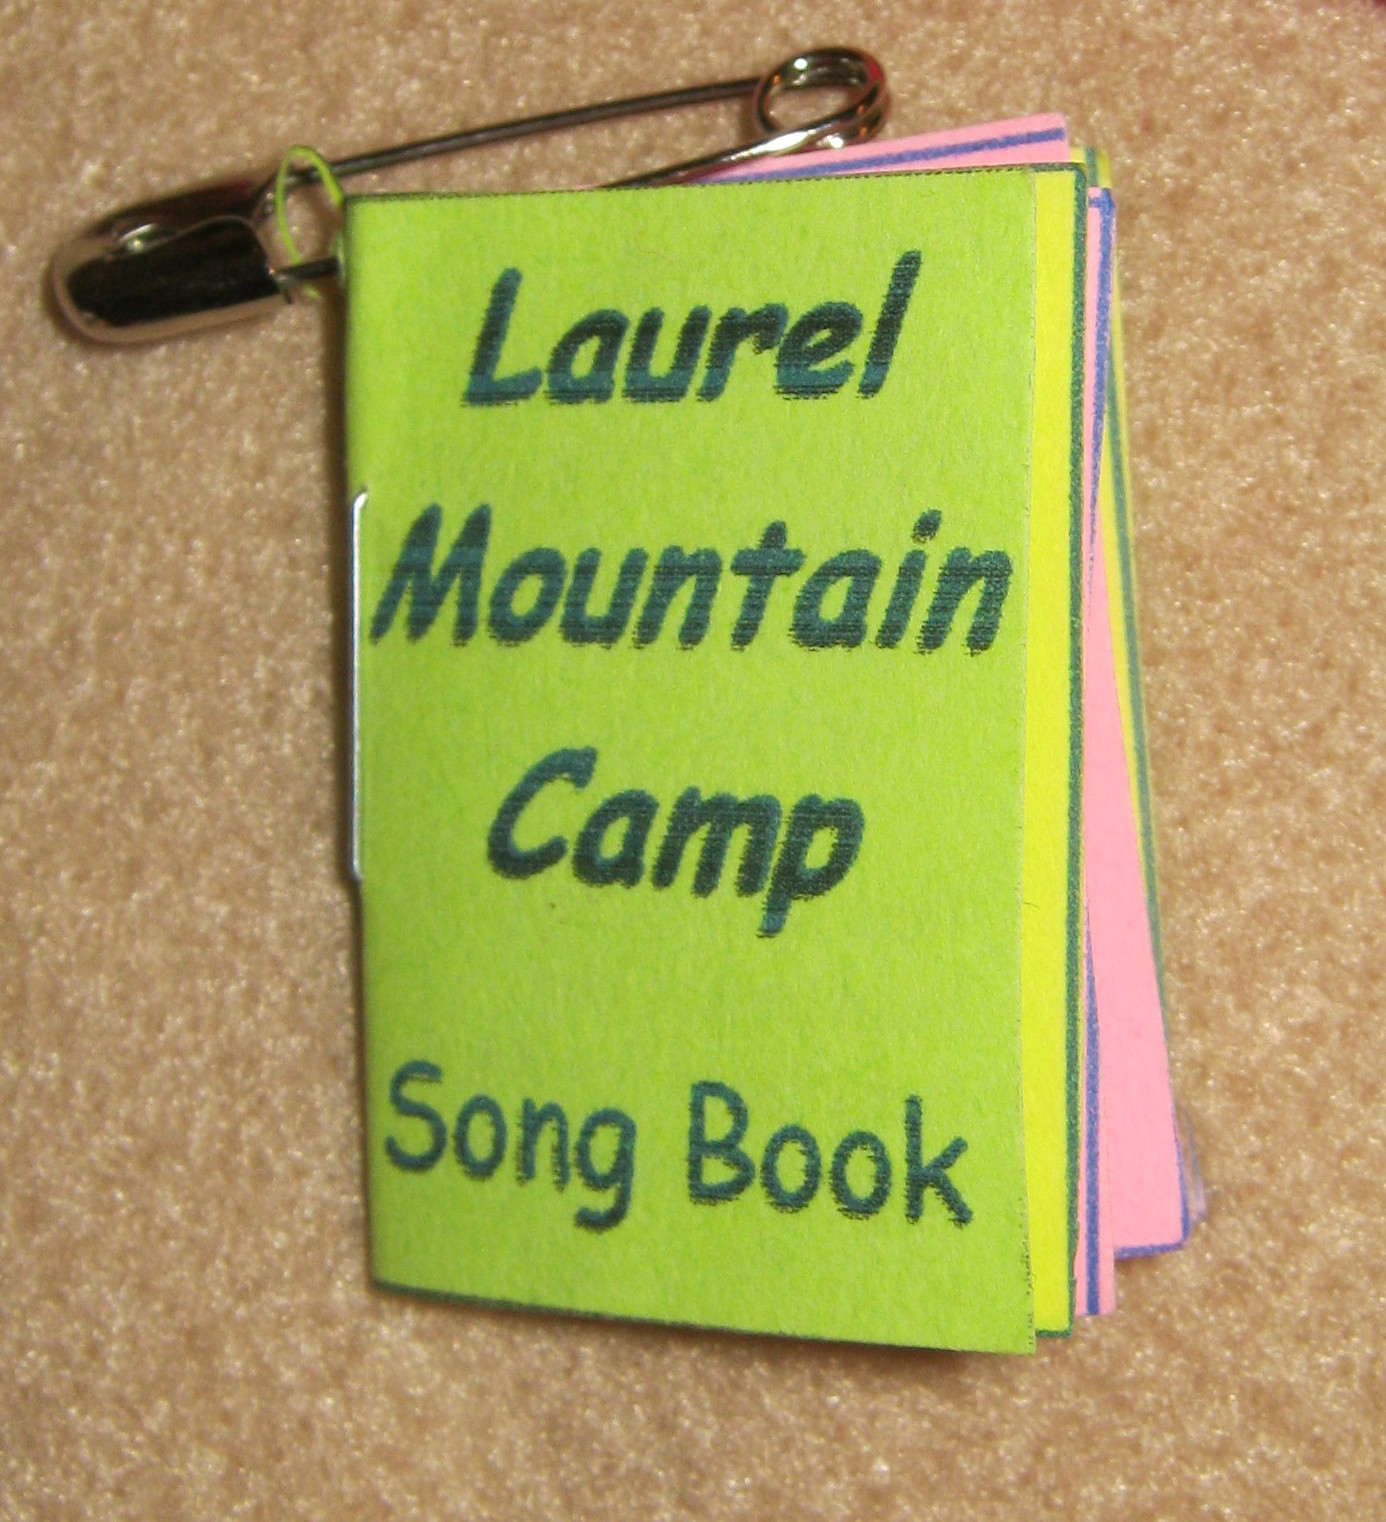 Camp Song Book Swap